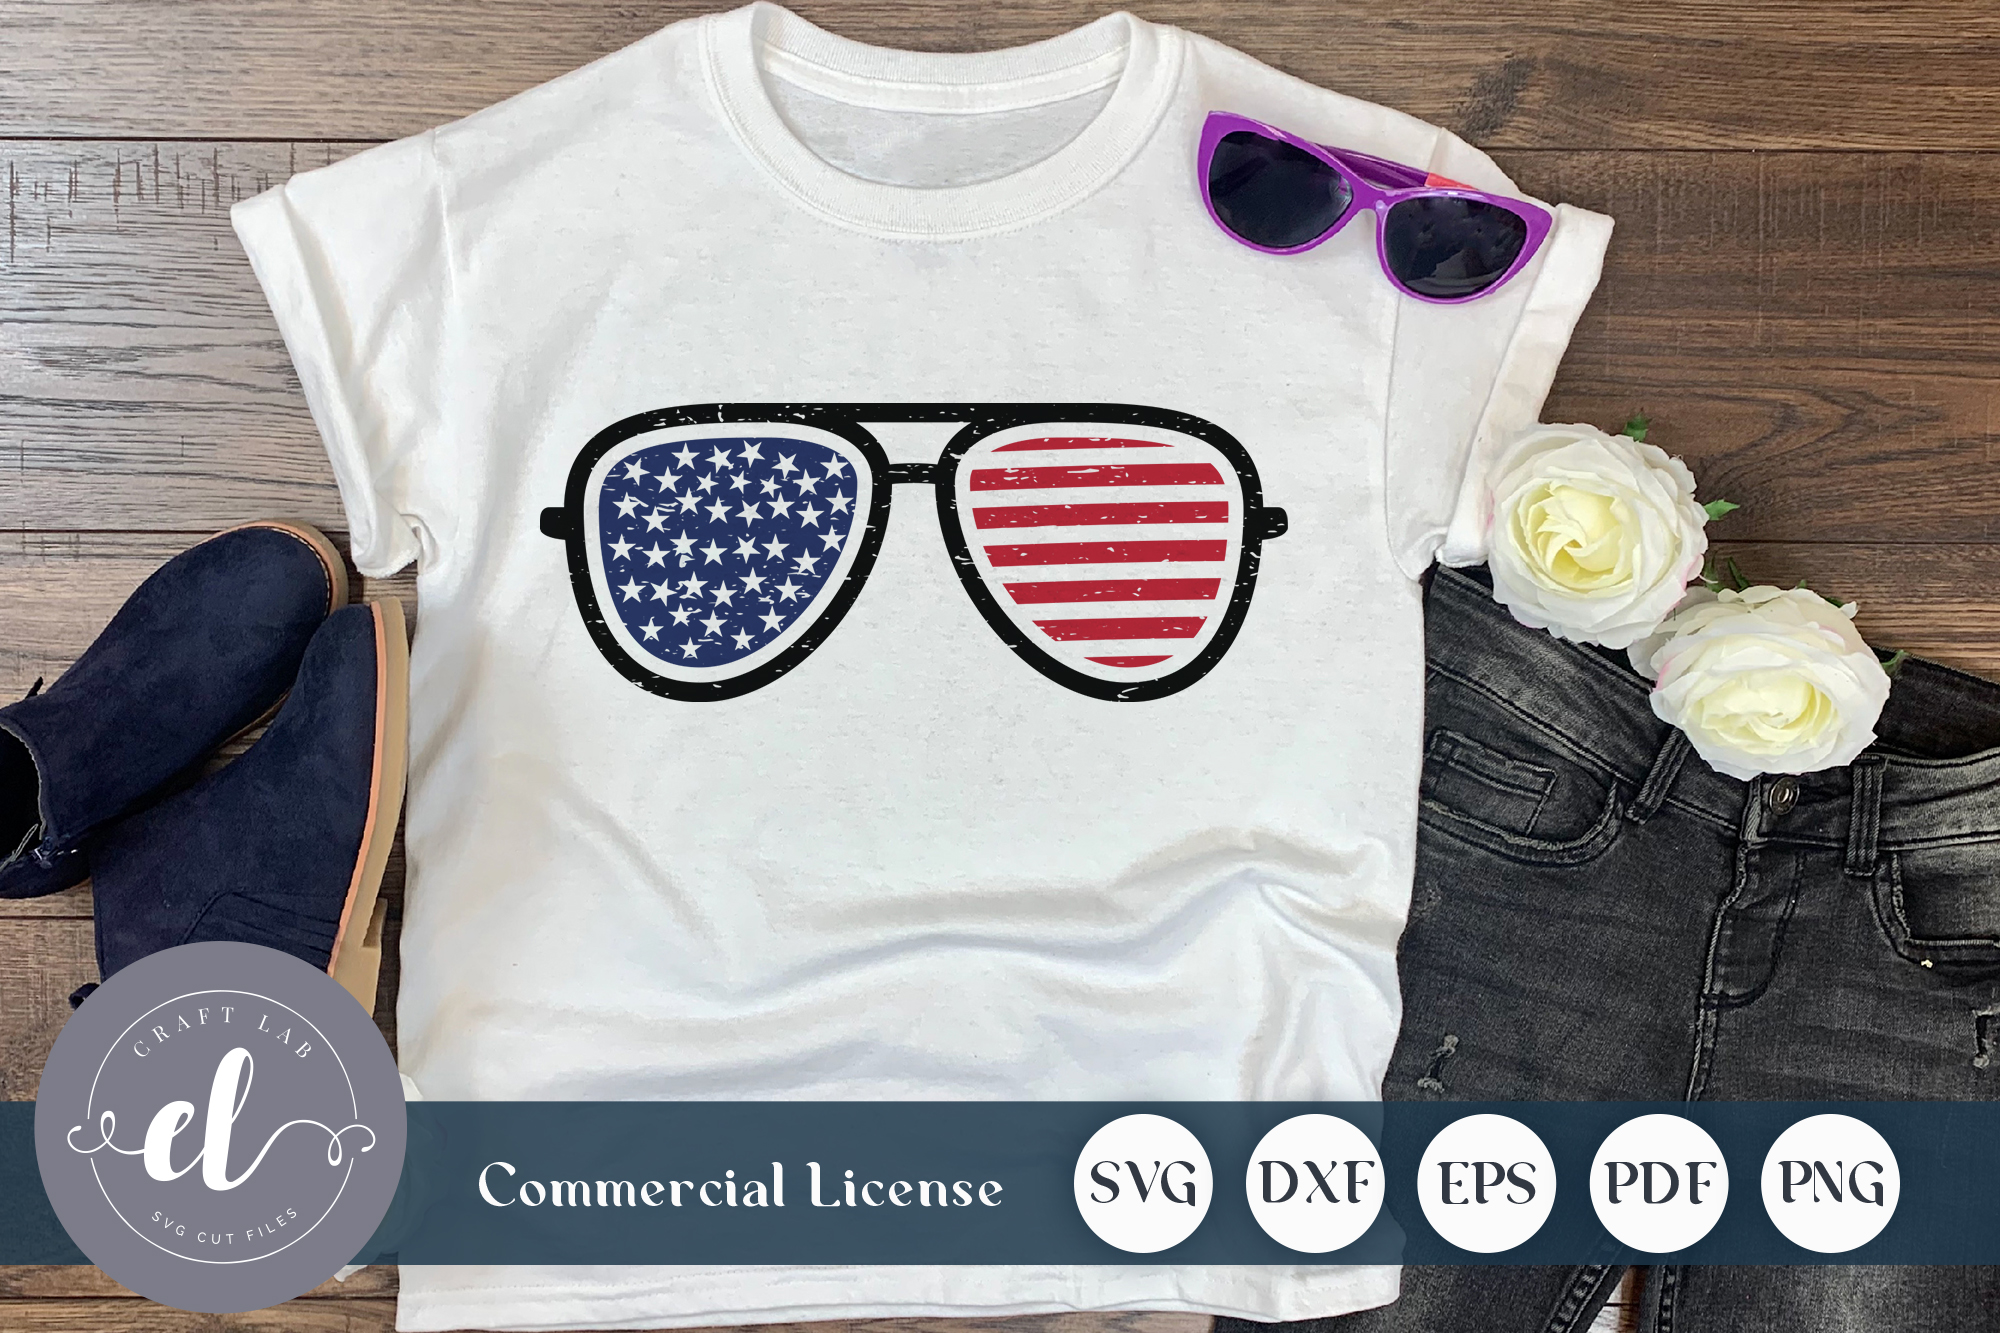 Download Free 4th Of July Sunglass Graphic By Craftlabsvg Creative Fabrica for Cricut Explore, Silhouette and other cutting machines.